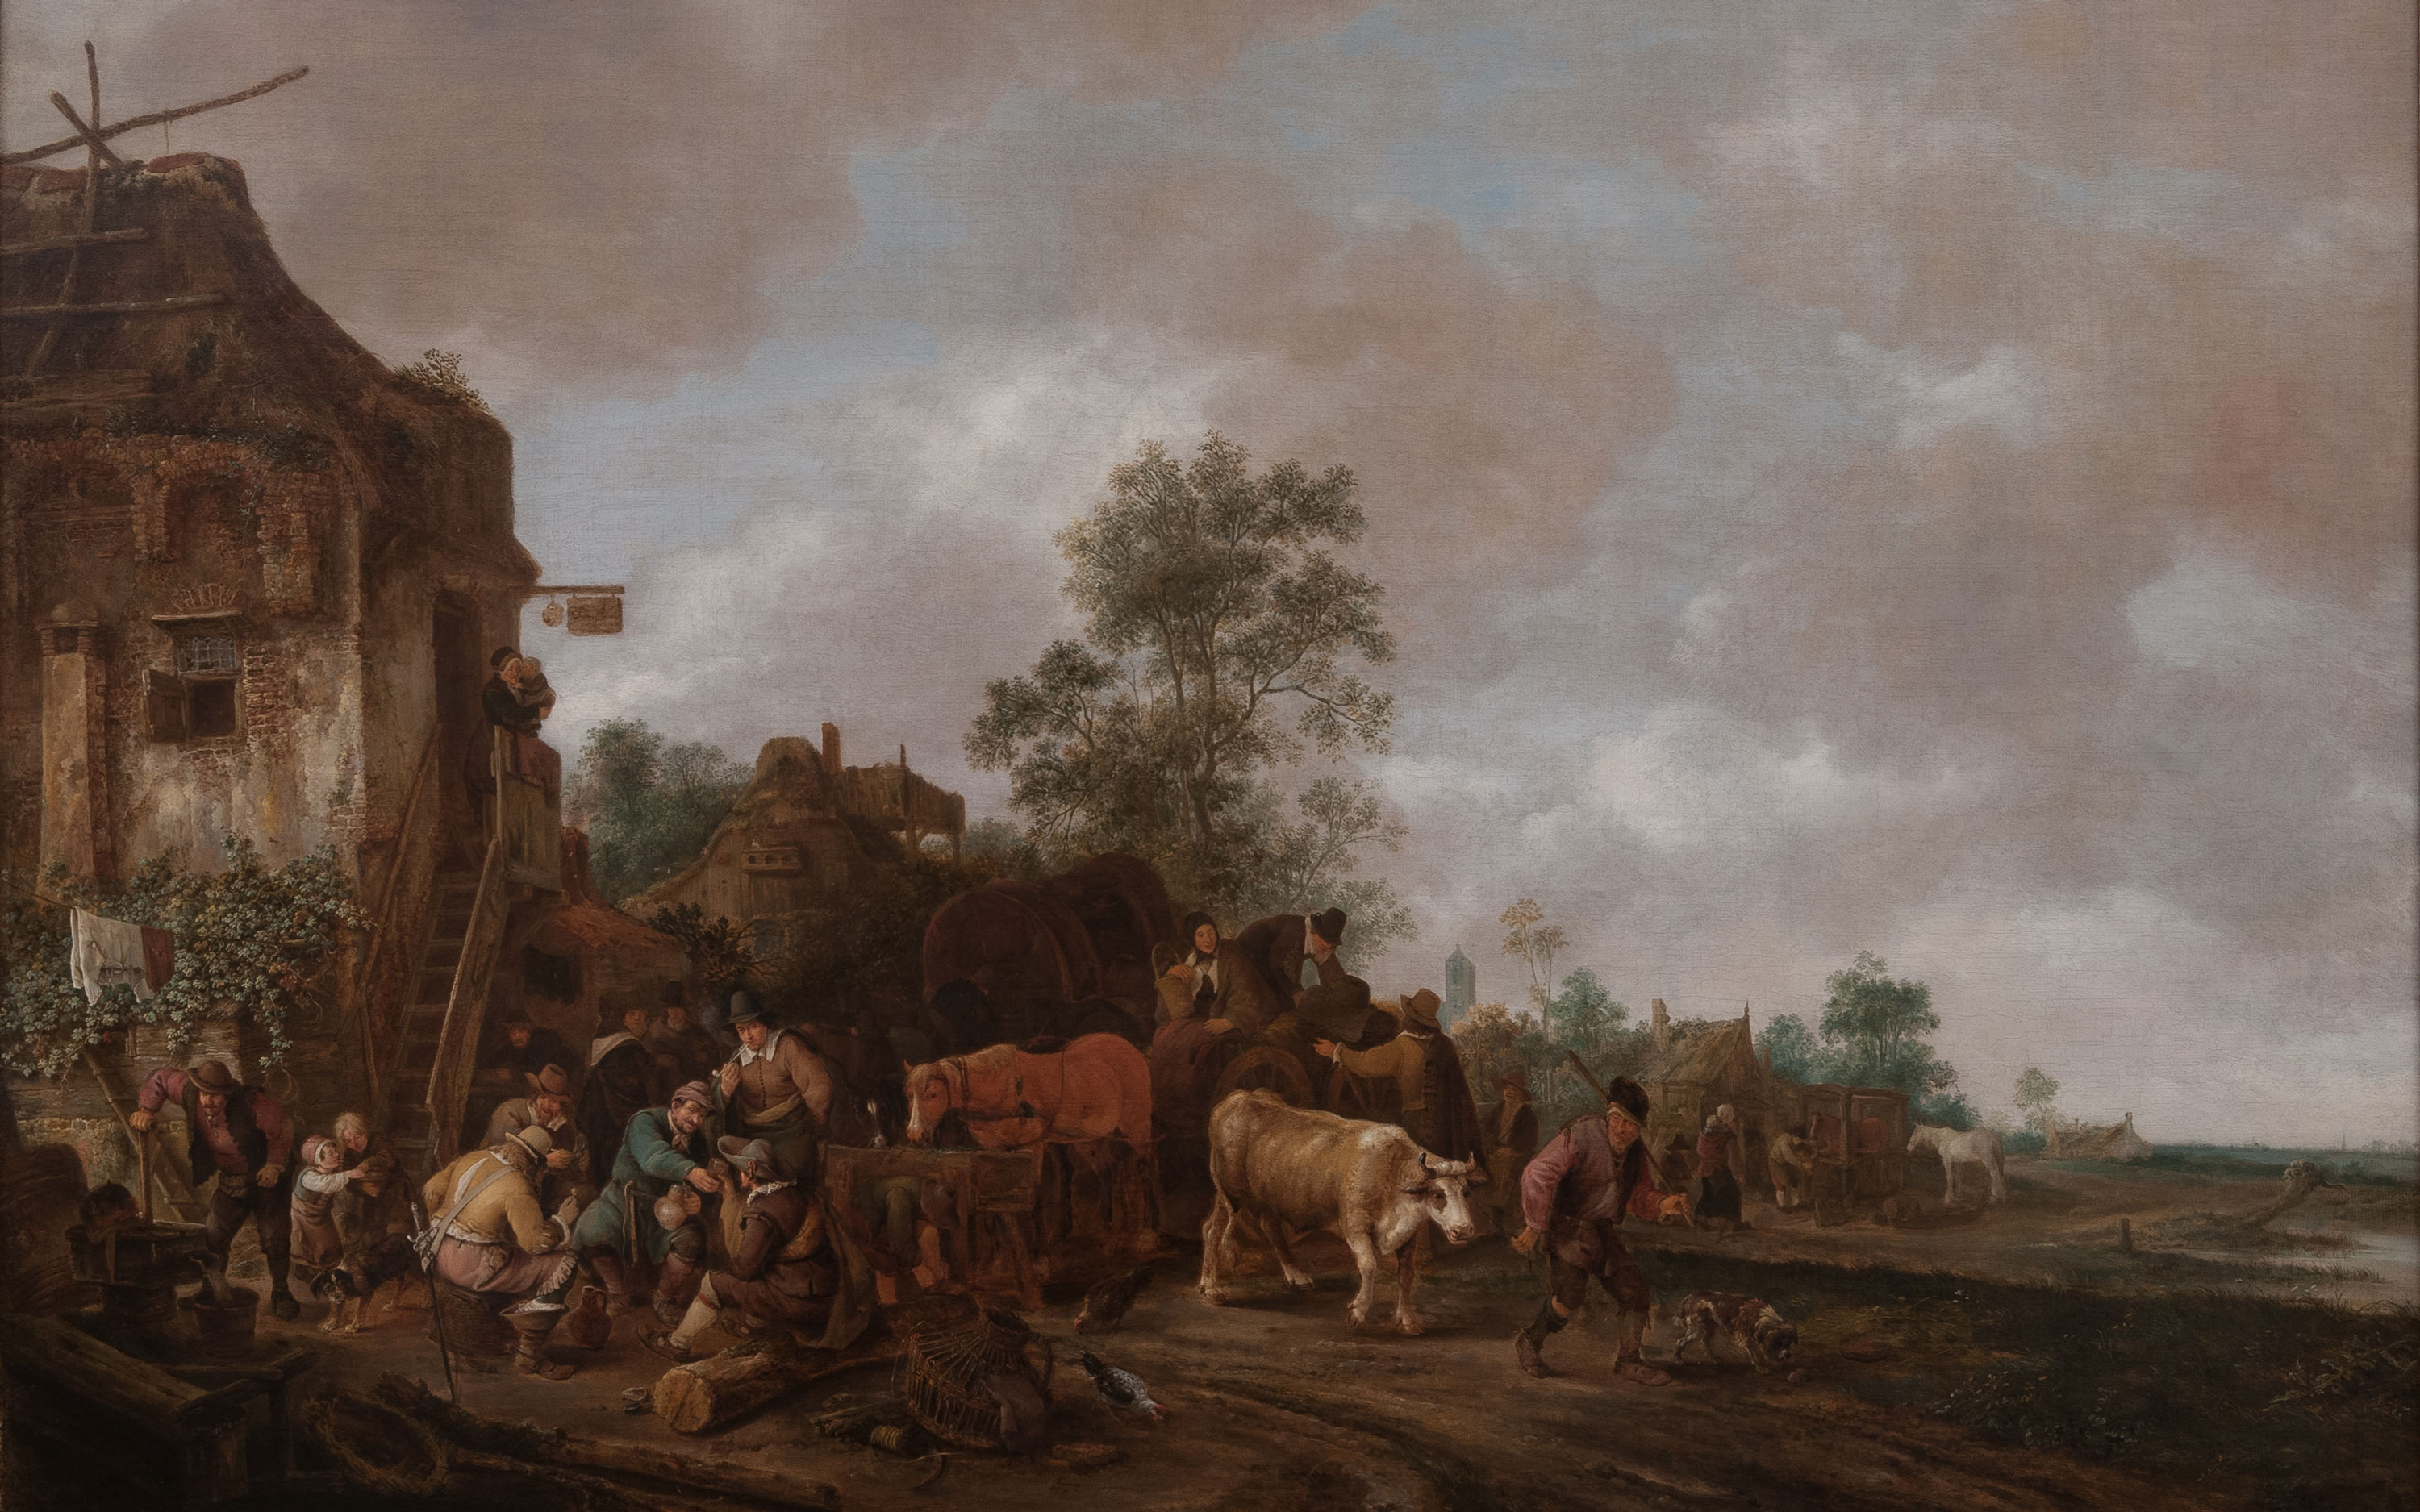 Isack van Ostade, Figures outside an inn; 1647; Waddesdon (National Trust) Accepted under the Cultural Gifts Scheme by HM Government and allocated to the National Trust, 2016; acc. no. 259.